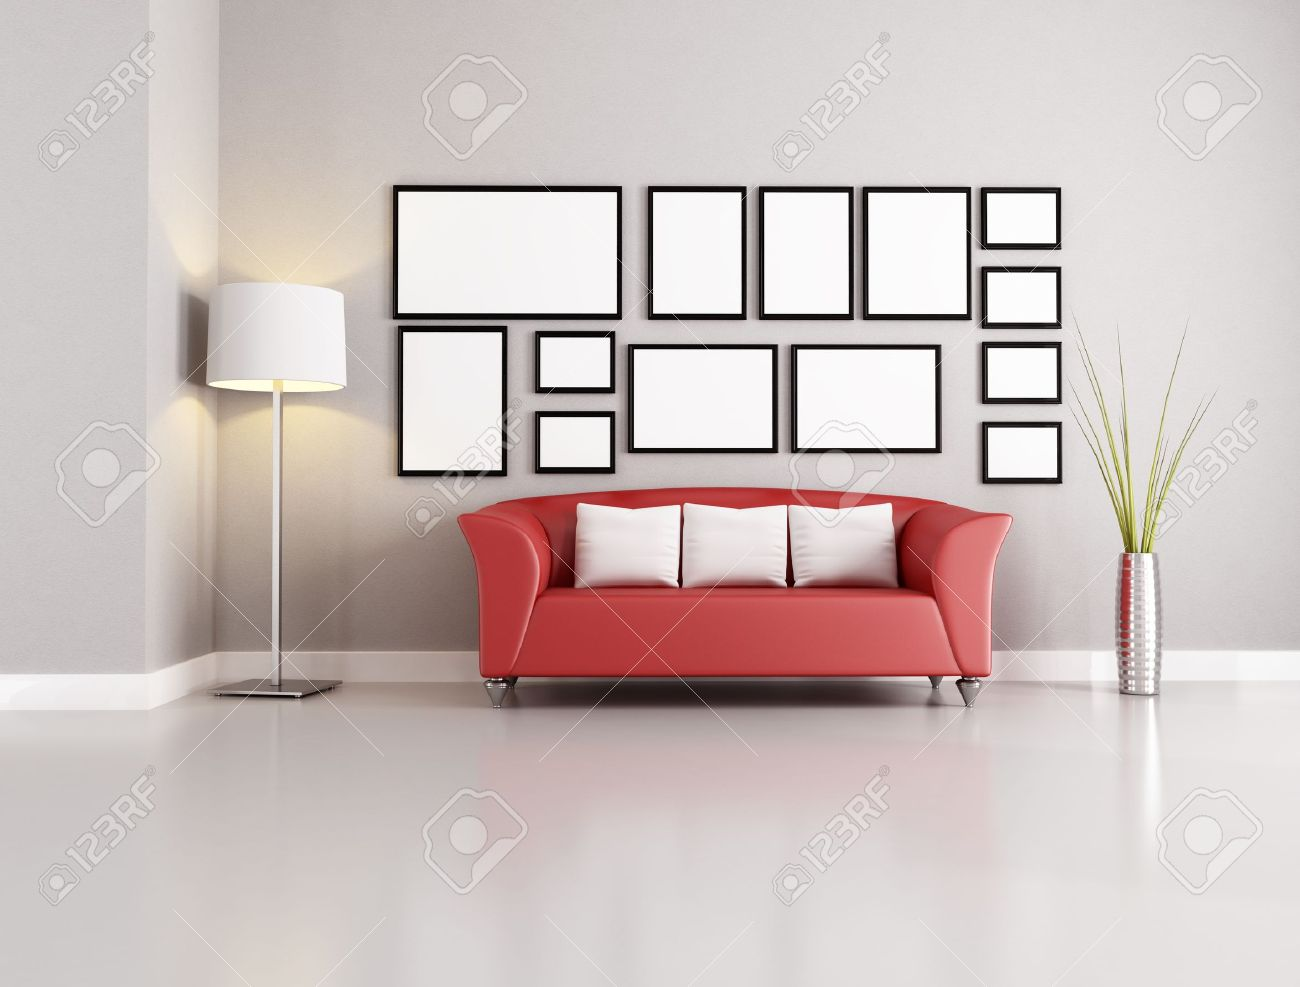 Red Sofa In Modern Living Room With Empty Frames Stock Photo ...